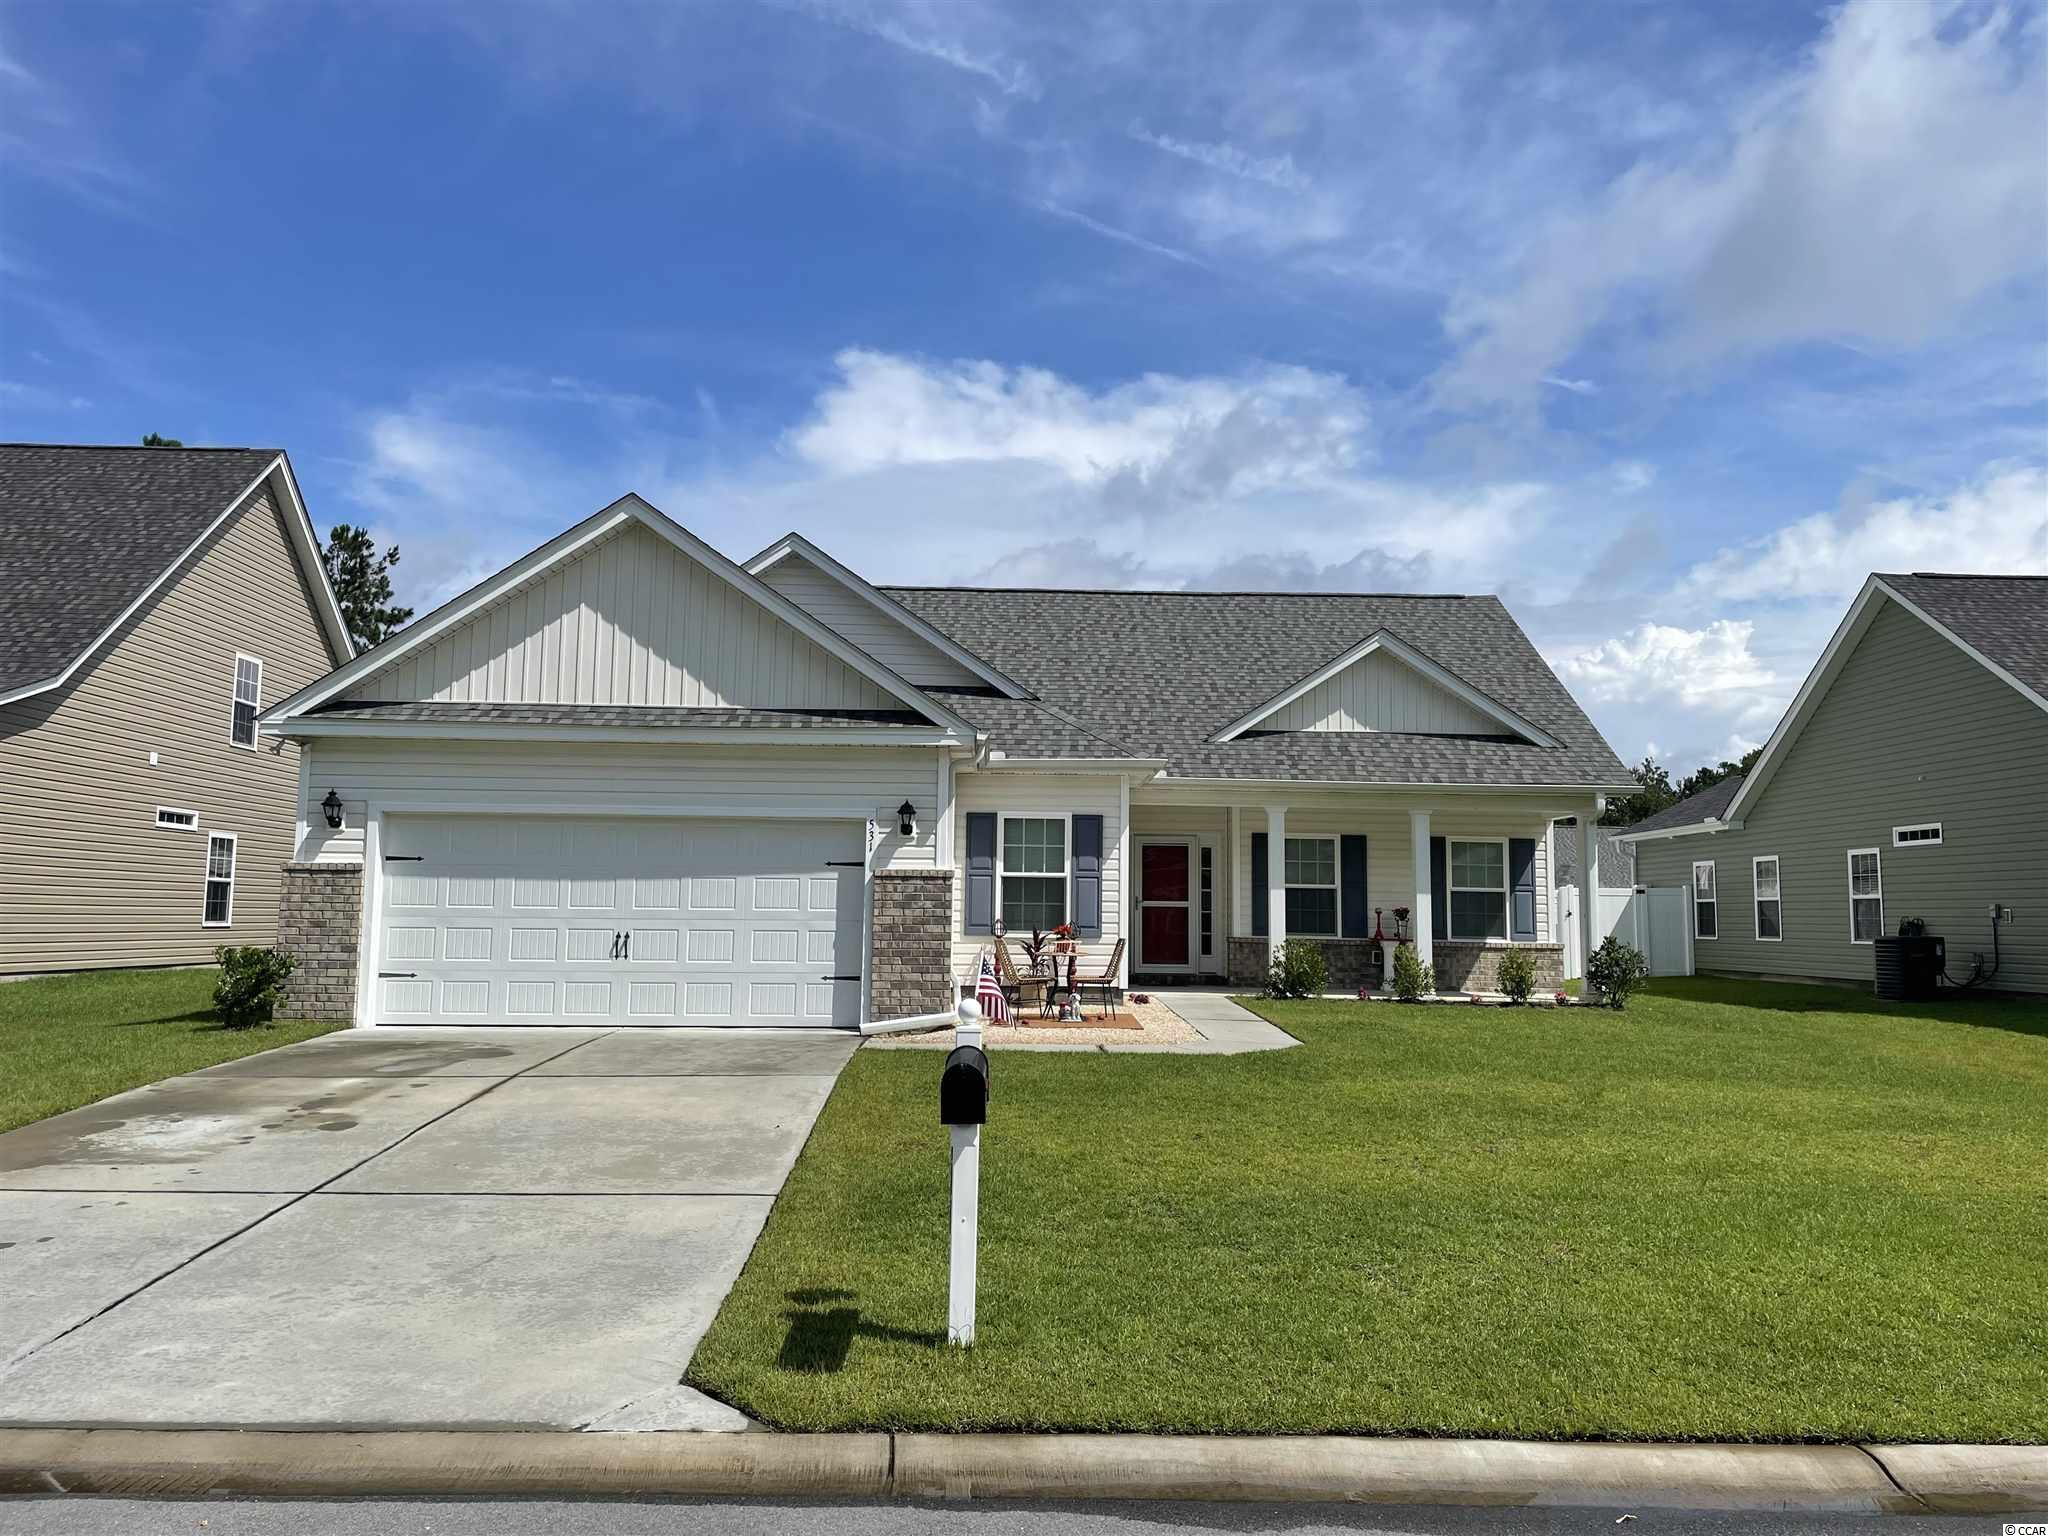 Looking for almost new construction that is move in ready? Here it is! This well maintained home is ready for a new owner! Built in 2017. Vaulted ceilings in the living room and tray ceiling in the master bedroom.  Master bath recently remodeled with an oversized soaking tub with hand held shower. Wood flooring though out living room, dining, foyer, halls and bedrooms. Upgraded vinyl tiles in the kitchen and baths. Custom paint and woodwork in living room. Upgraded kitchen sink. Super efficient natural gas dryer, gas stove, gas heating and gas water heater! Covered rear porch. Large yard with privacy fencing and irrigation. All of this and only 20 minutes from the beach and all that Myrtle Beach has to offer!